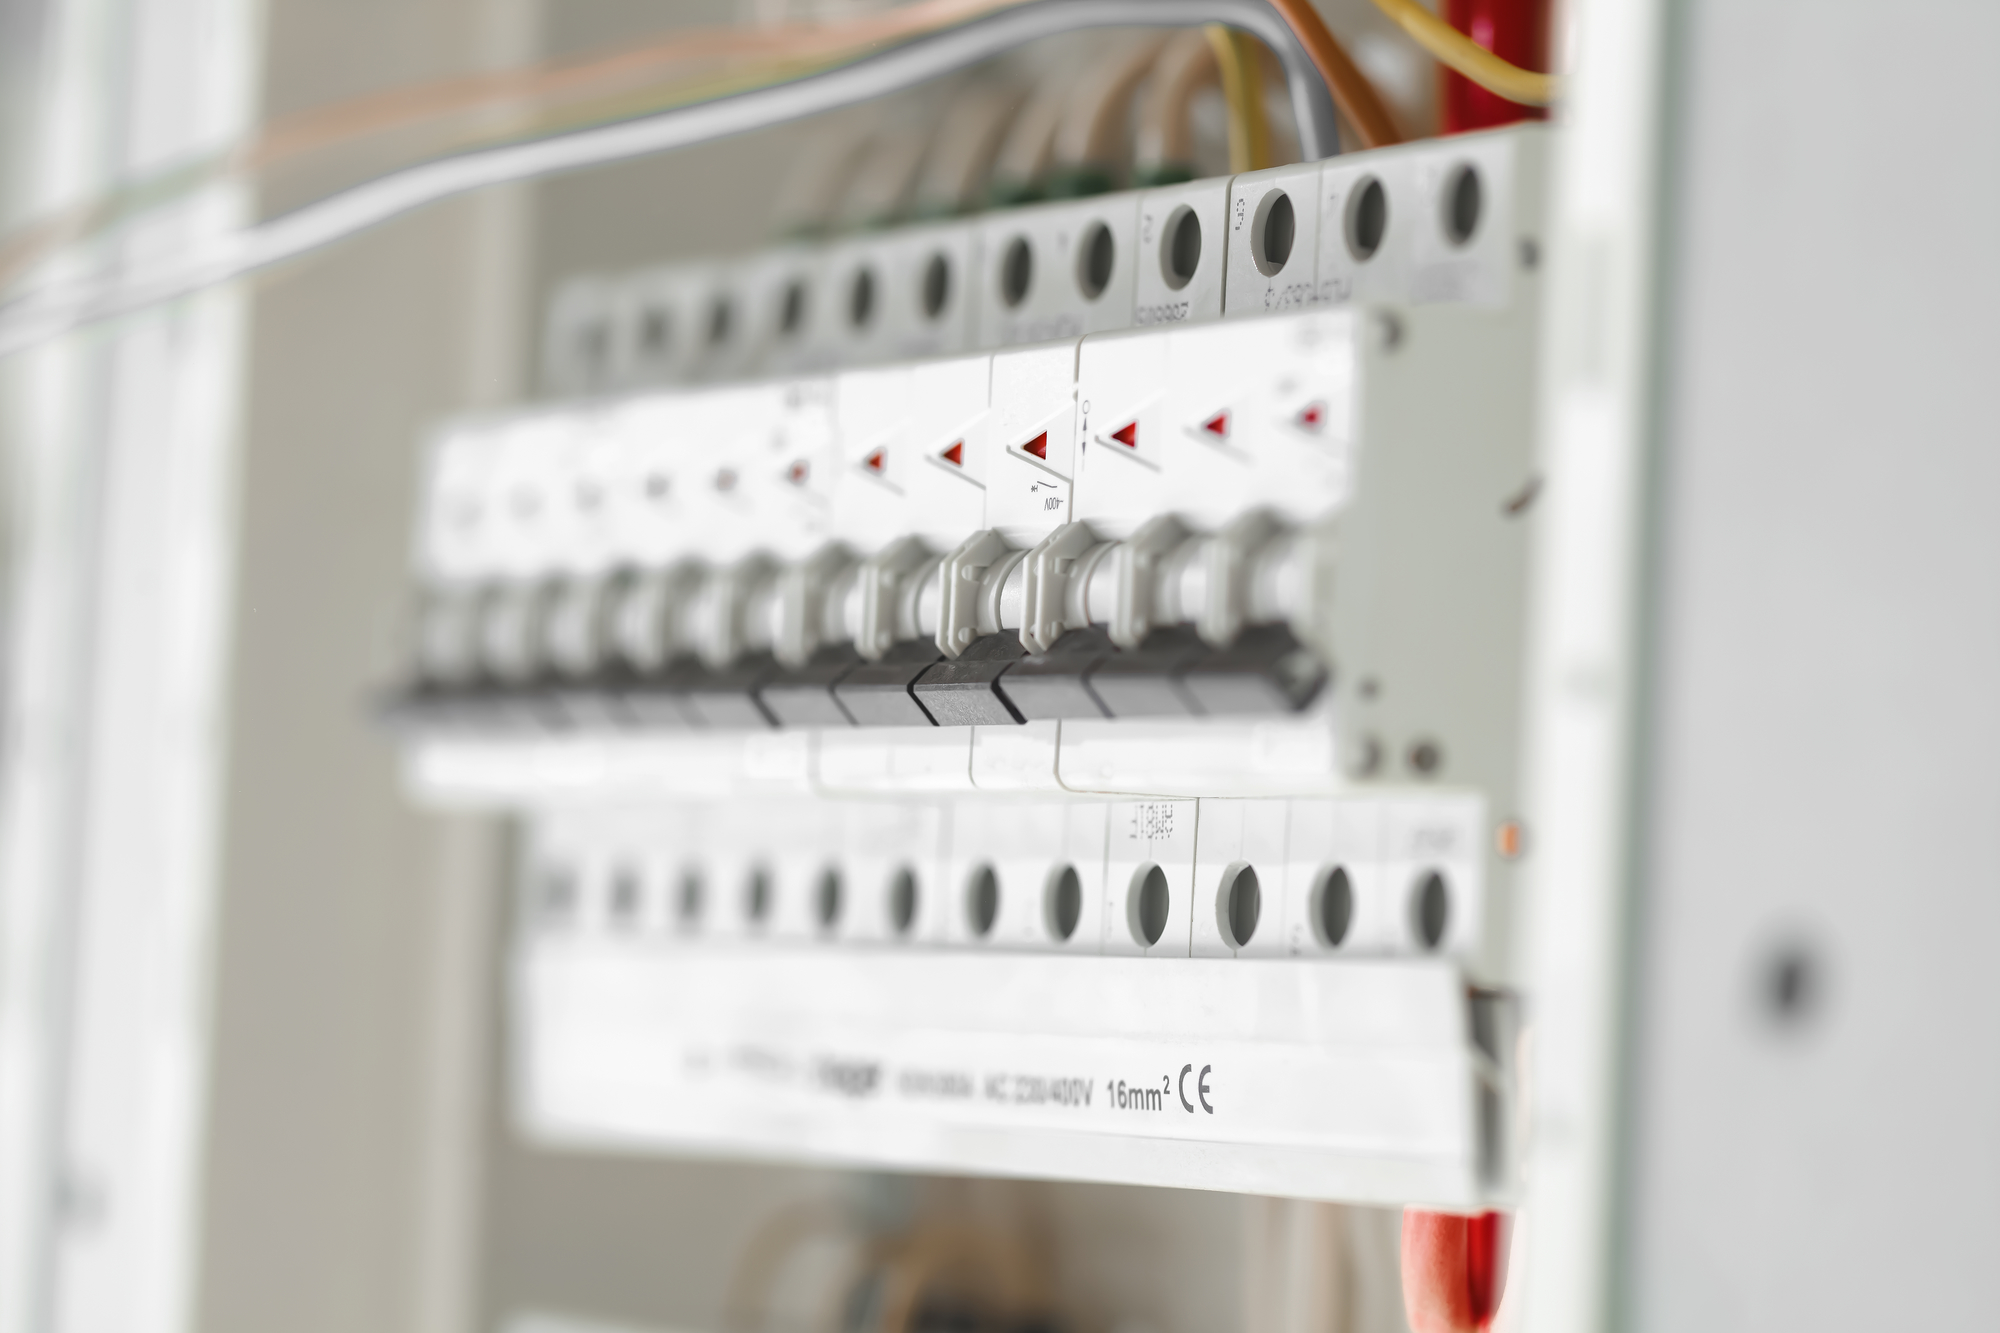 Spectrum Fire Uk Ltd Protection Specialist Electrical Wiring Jobs In London